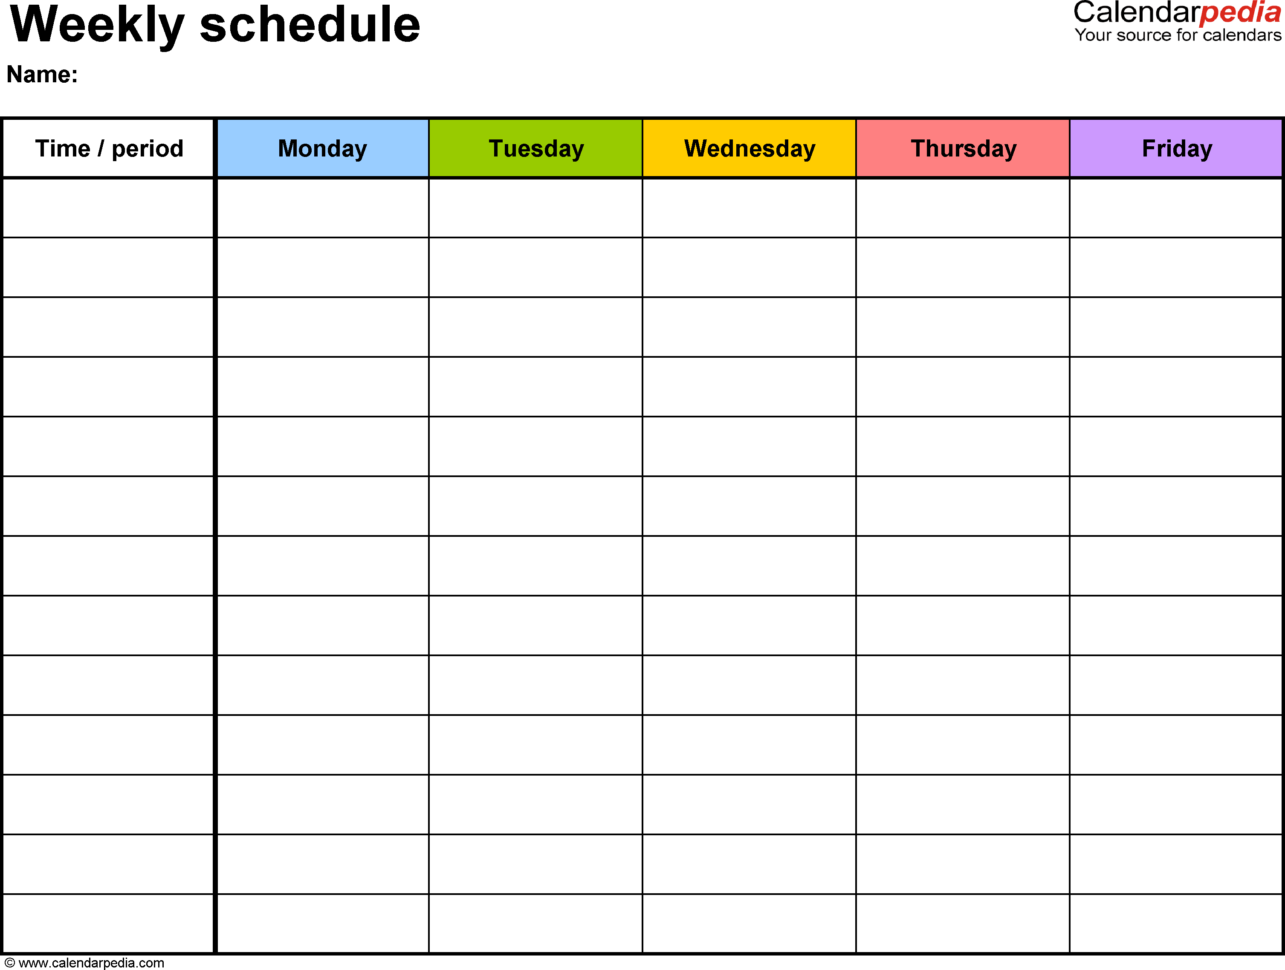 12 Week Year Spreadsheet Intended For Free Weekly Schedule Templates For Excel  18 Templates